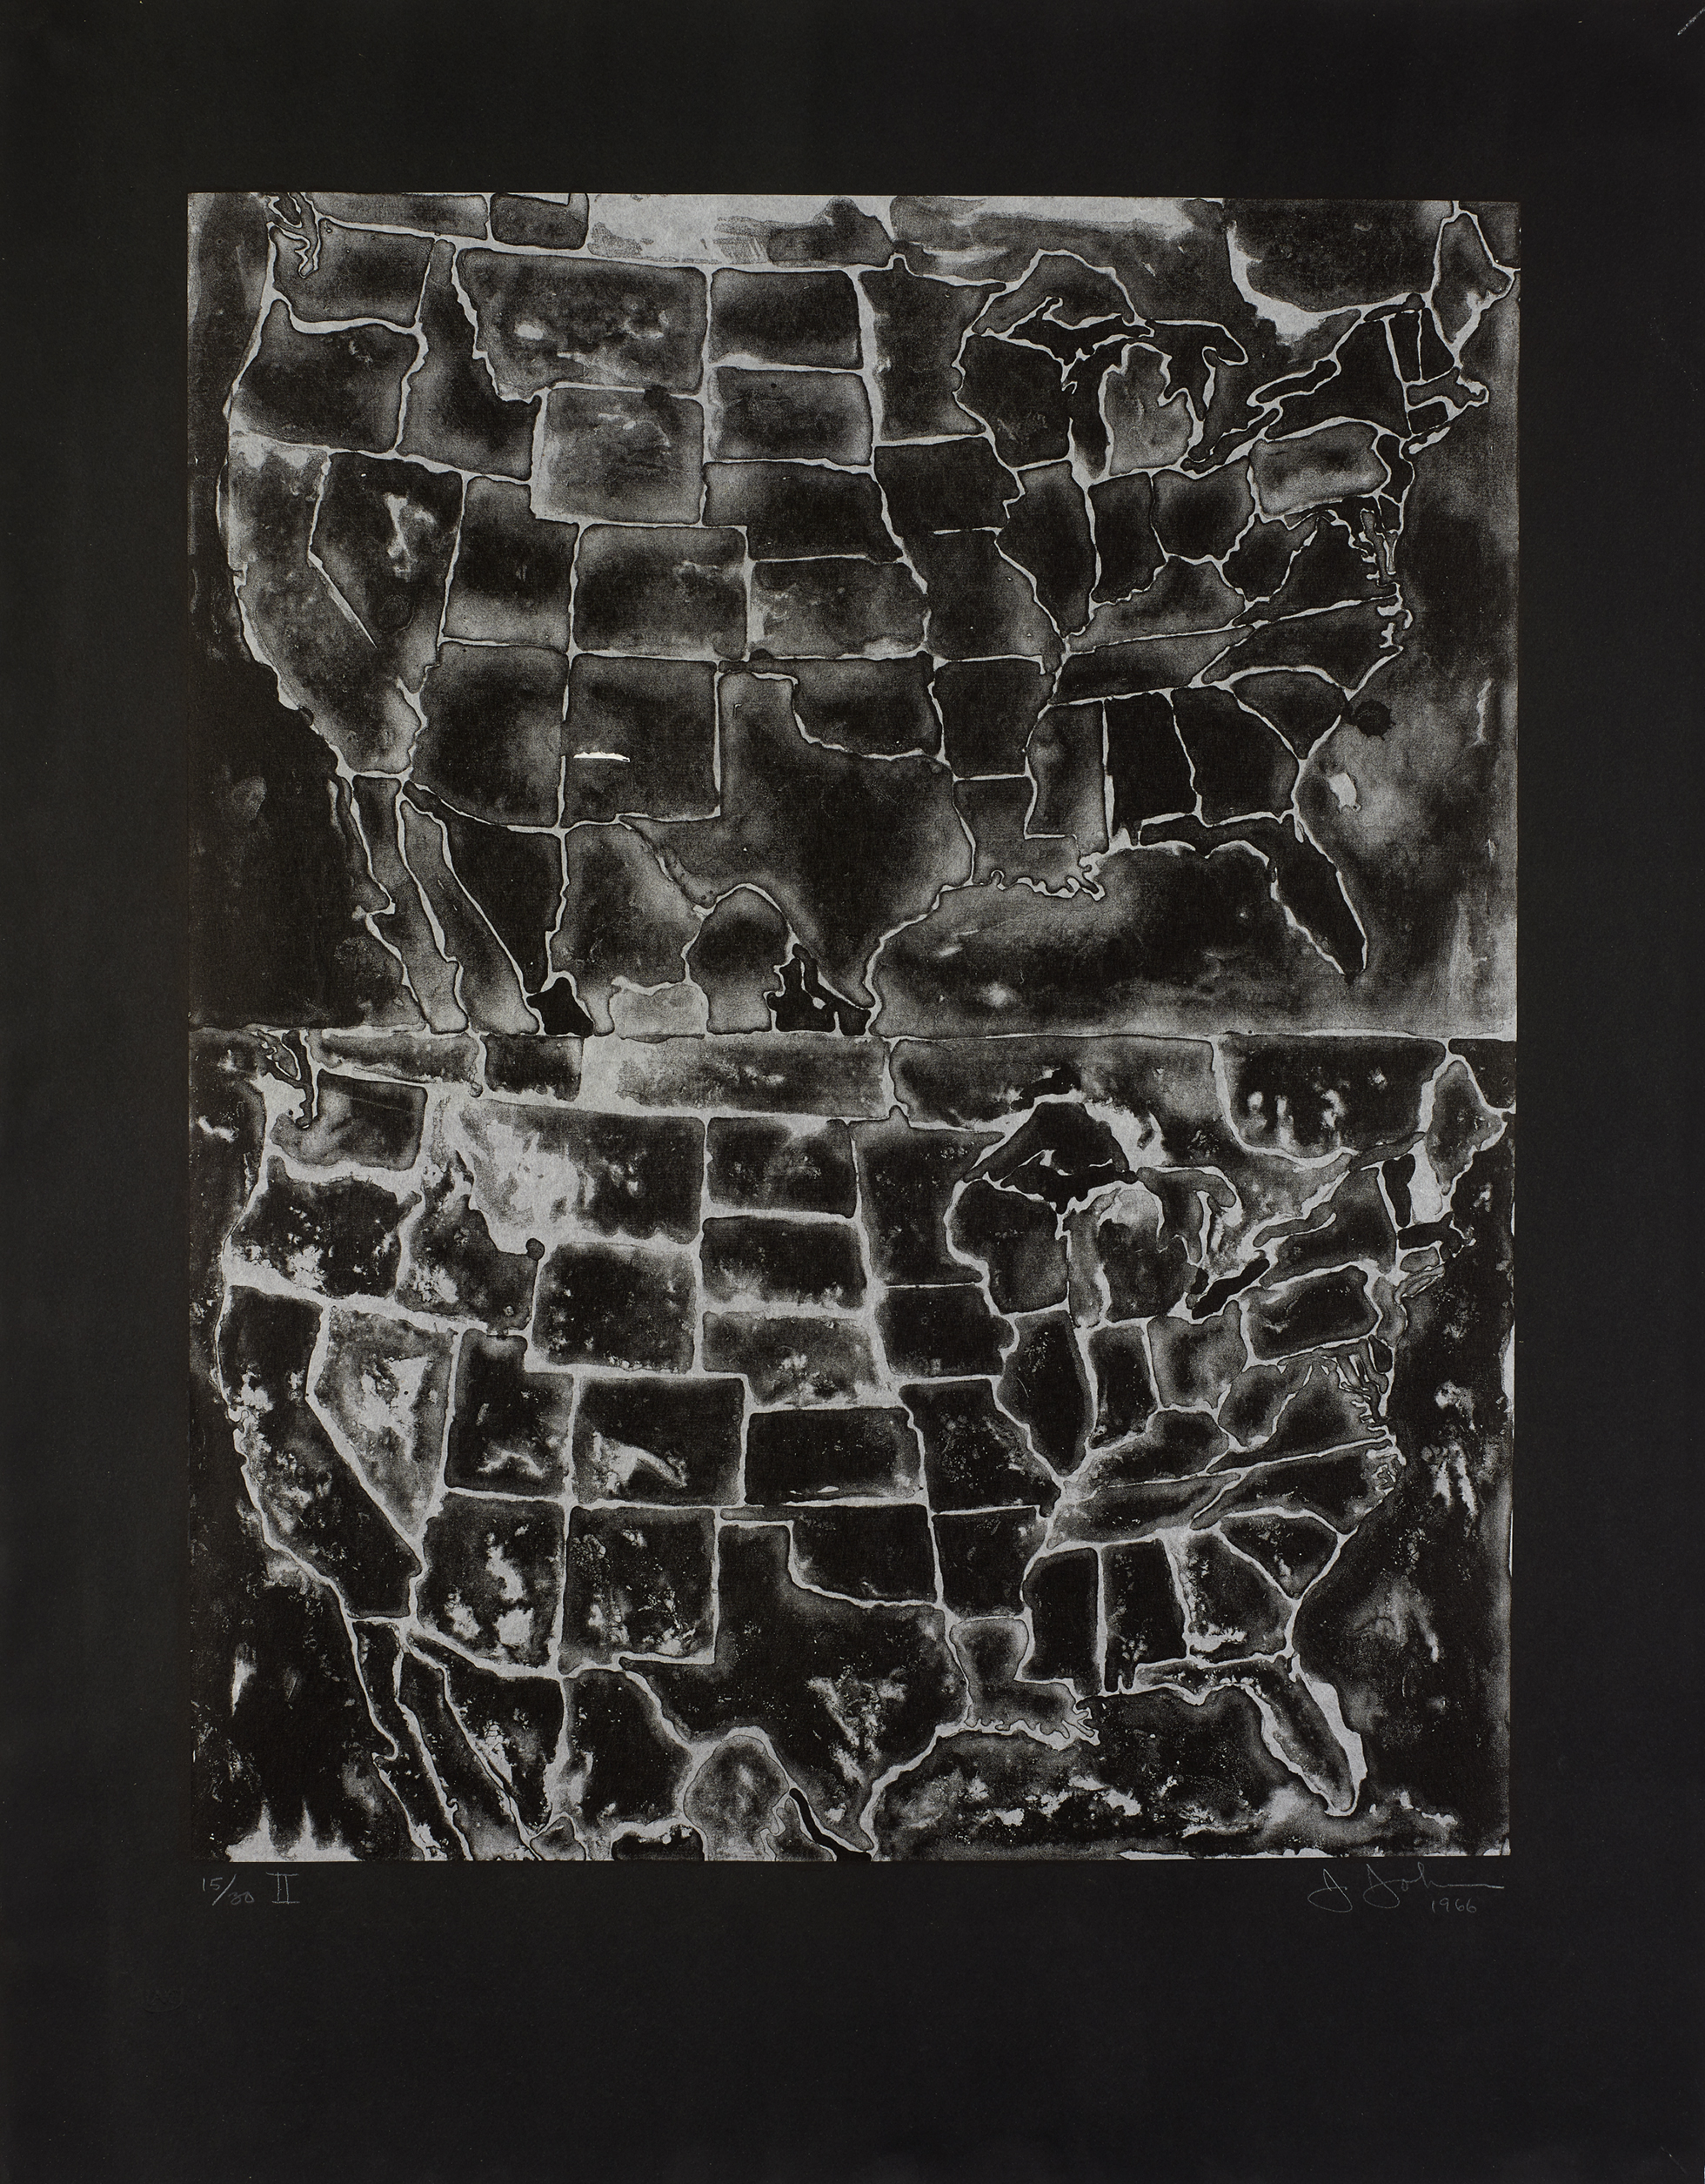 Two maps of the United States of America, one above the other. Printed in black on white Japan paper